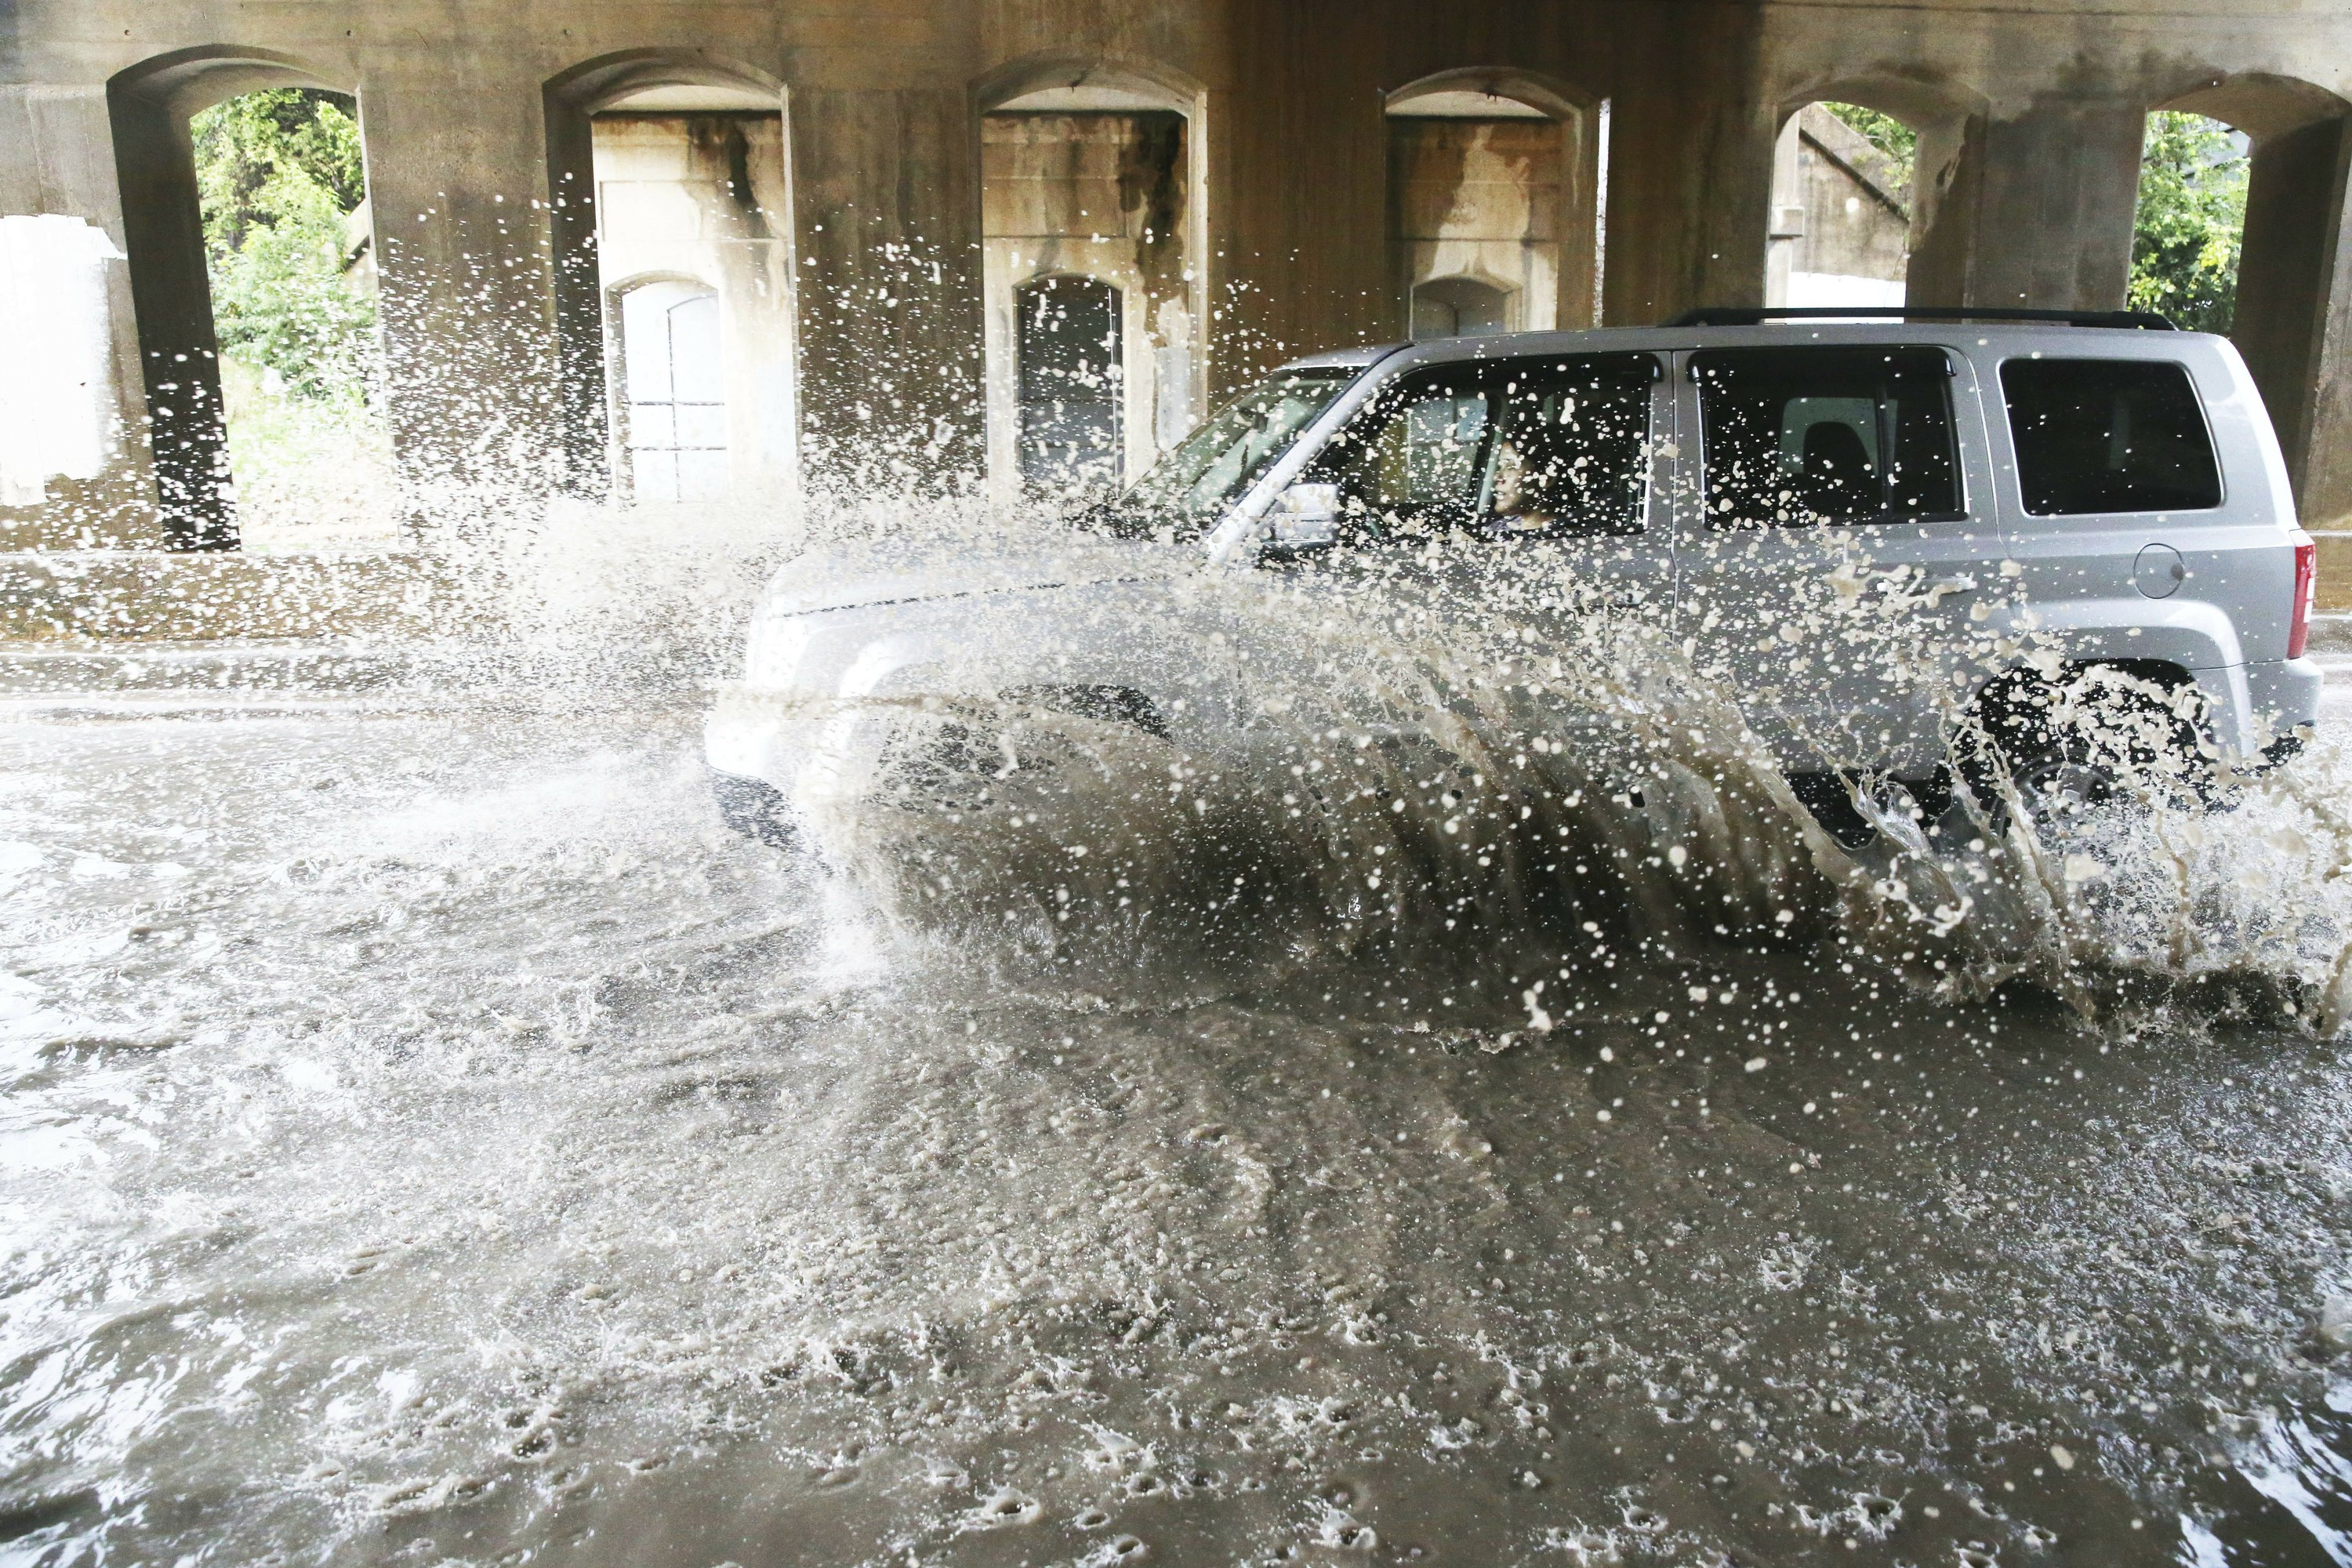 Storms dump record rain in Oklahoma and cause death in Texas